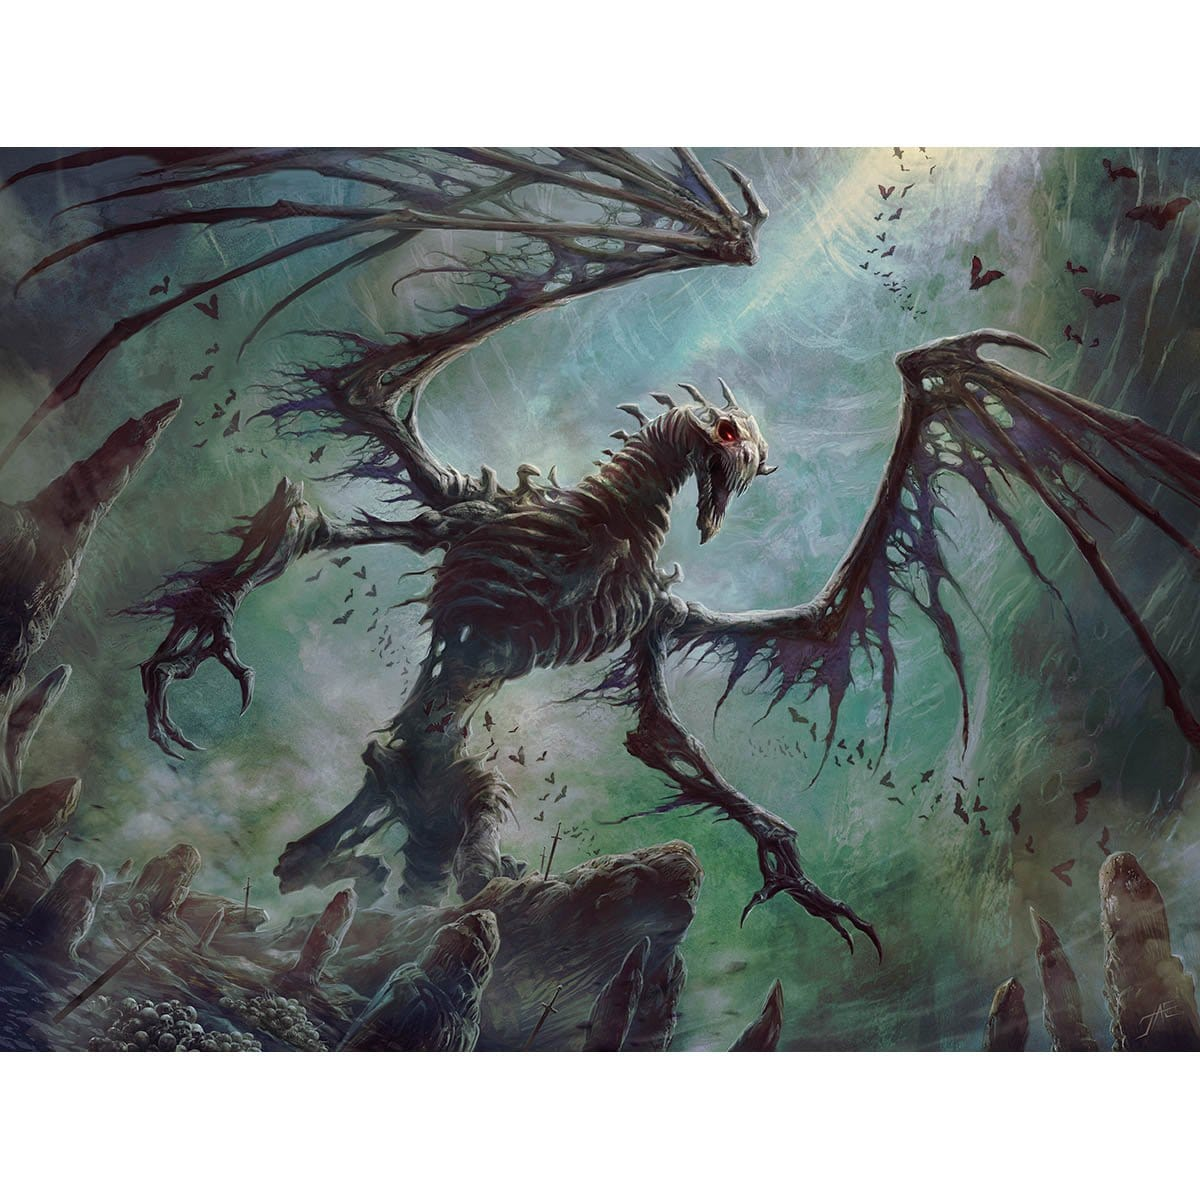 Bone Dragon Print - Print - Original Magic Art - Accessories for Magic the Gathering and other card games